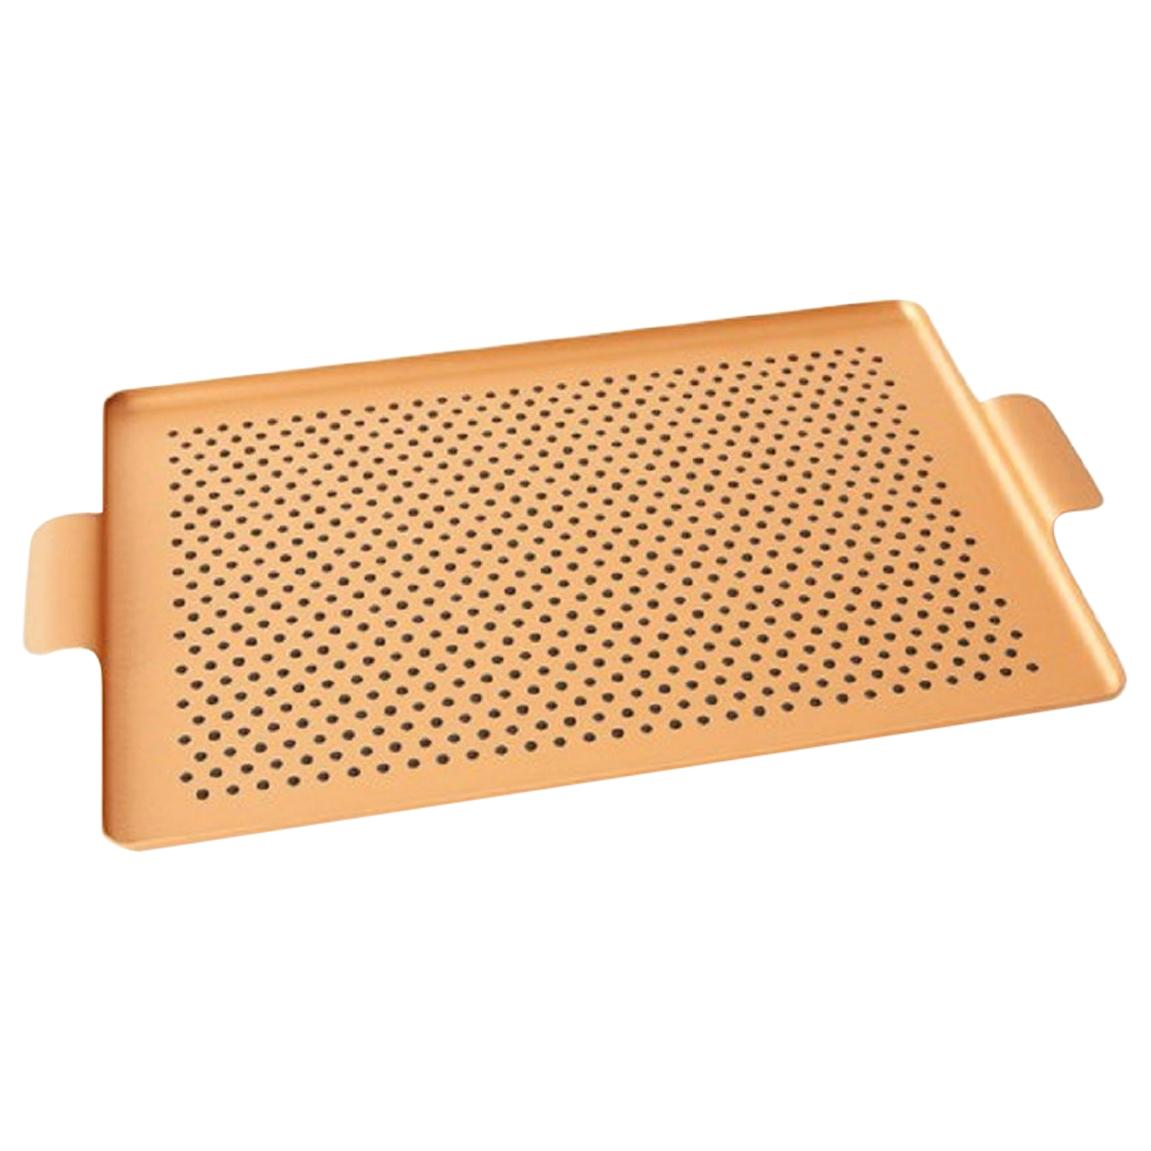 Gold Serving Tray Kaymet Serving Tray Blush Gold Anodized Aluminum Silicone Rubber Grip